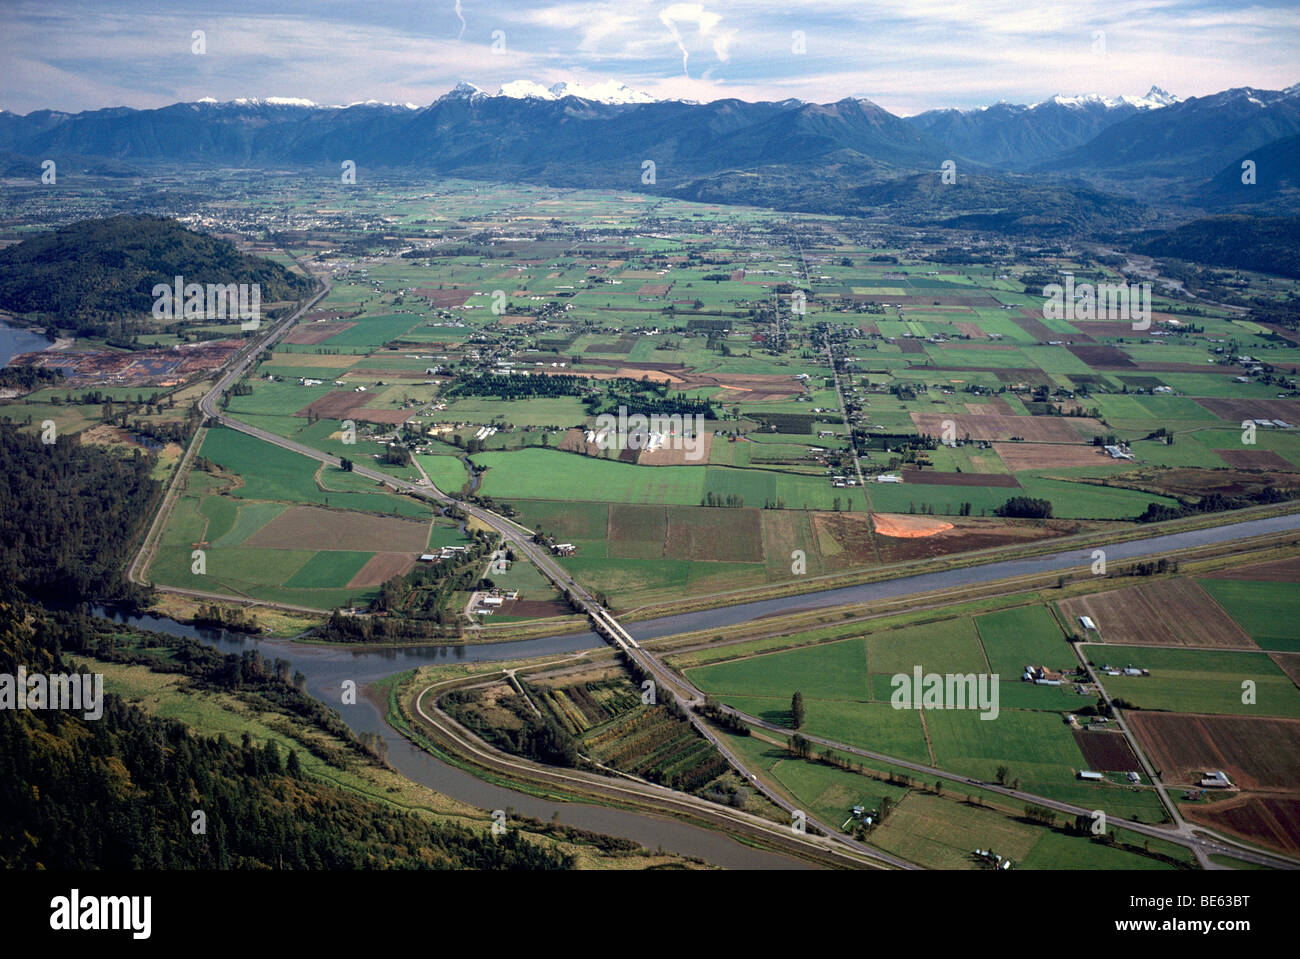 Scenic Aerial View, Farmland in Fraser Valley, and Cascade Mountains near Chilliwack, BC, British Columbia, Canada - Stock Image